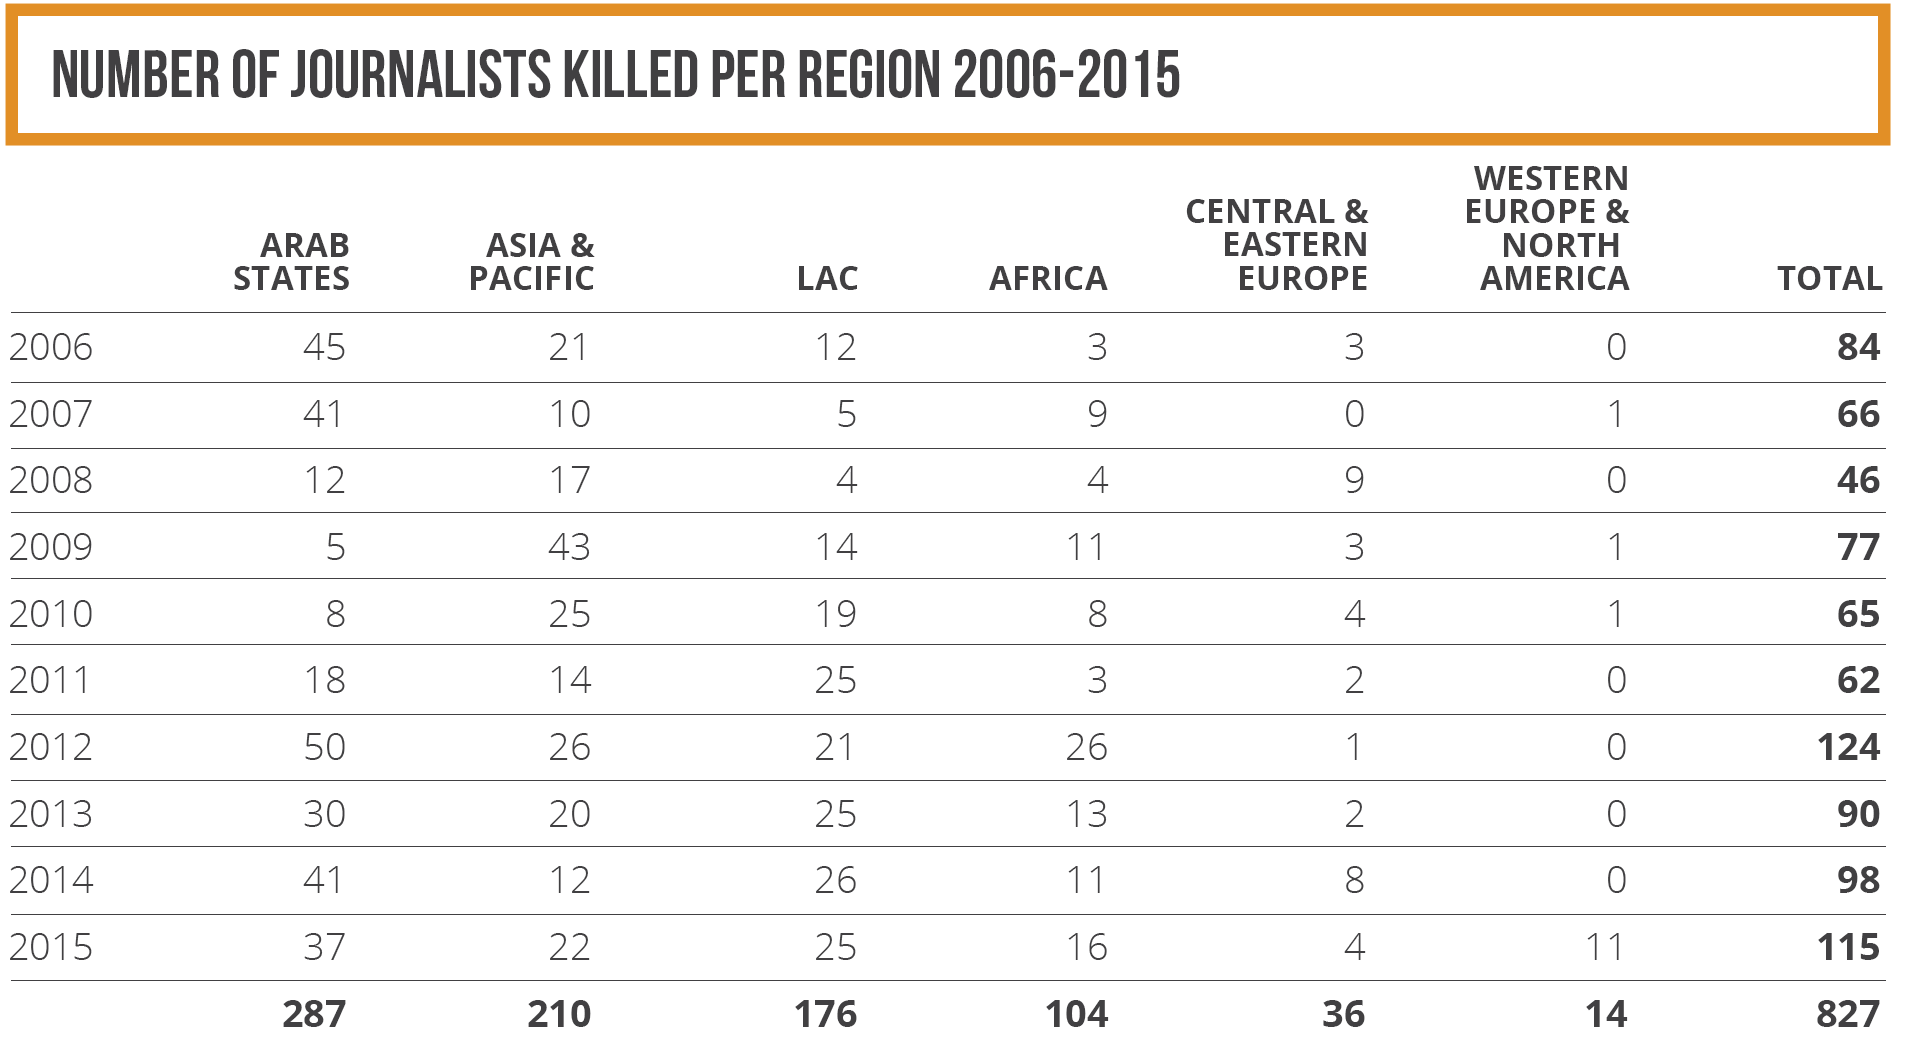 Number of journalists killed per region 2006-2015